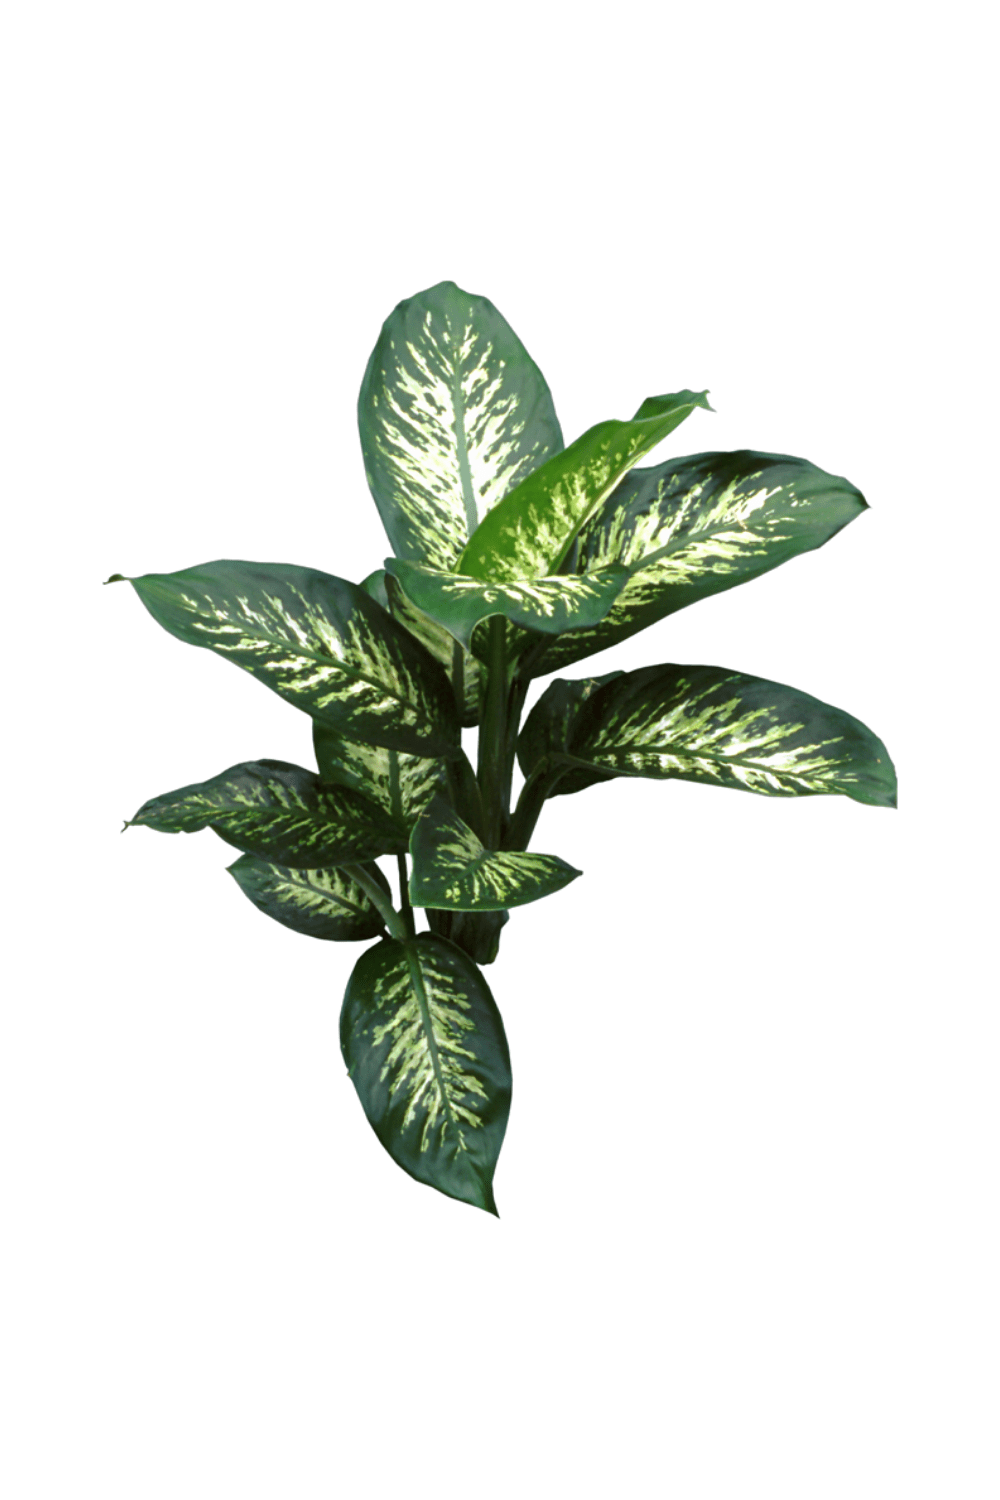 How to Care for Your Dumb Cane Plant